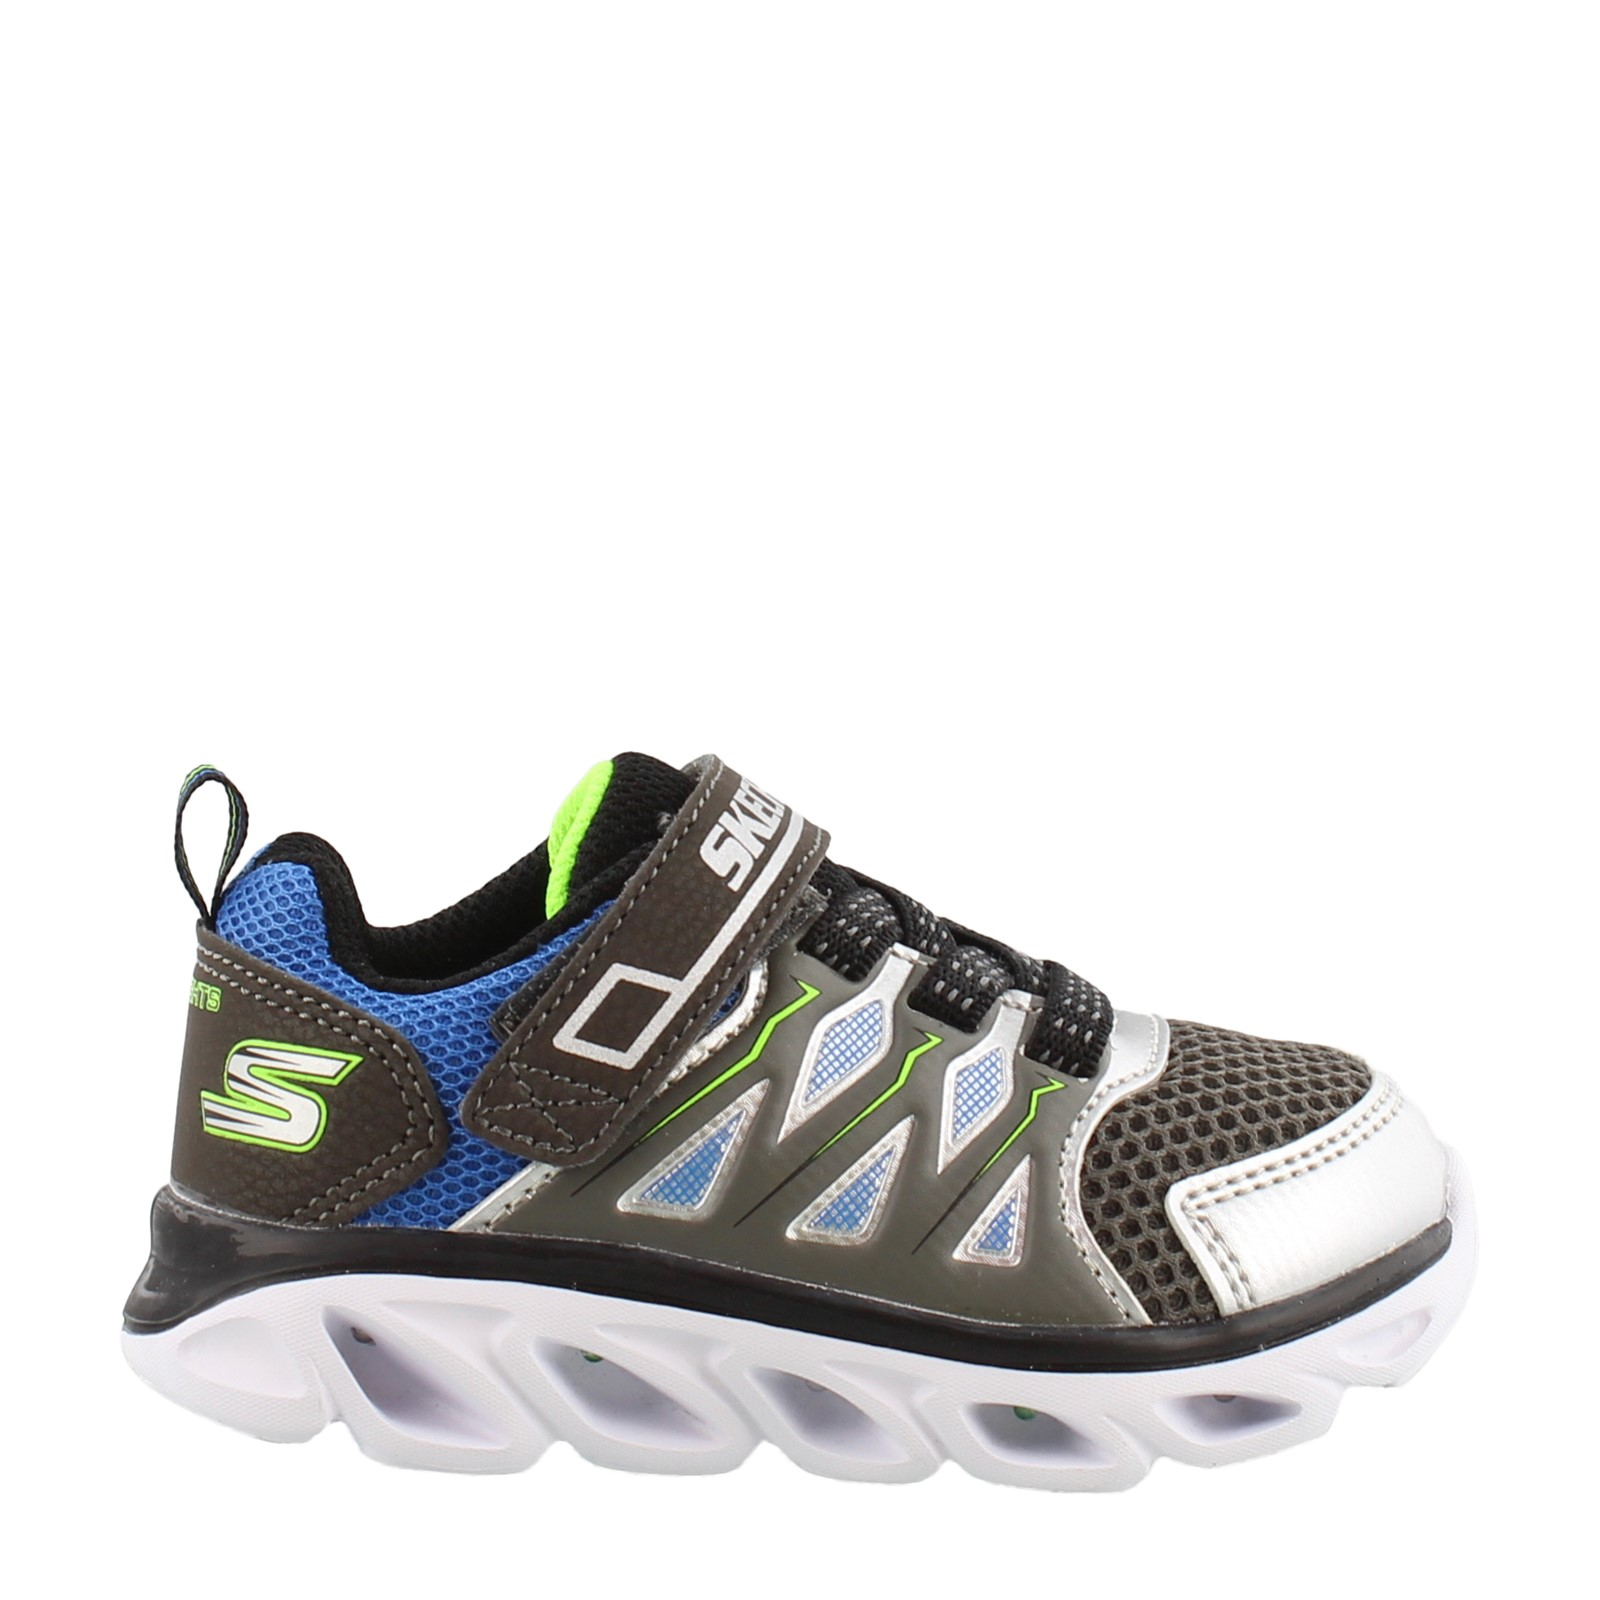 Boy's Skechers, S Lights Hypno-Flash 3.0 Shoes